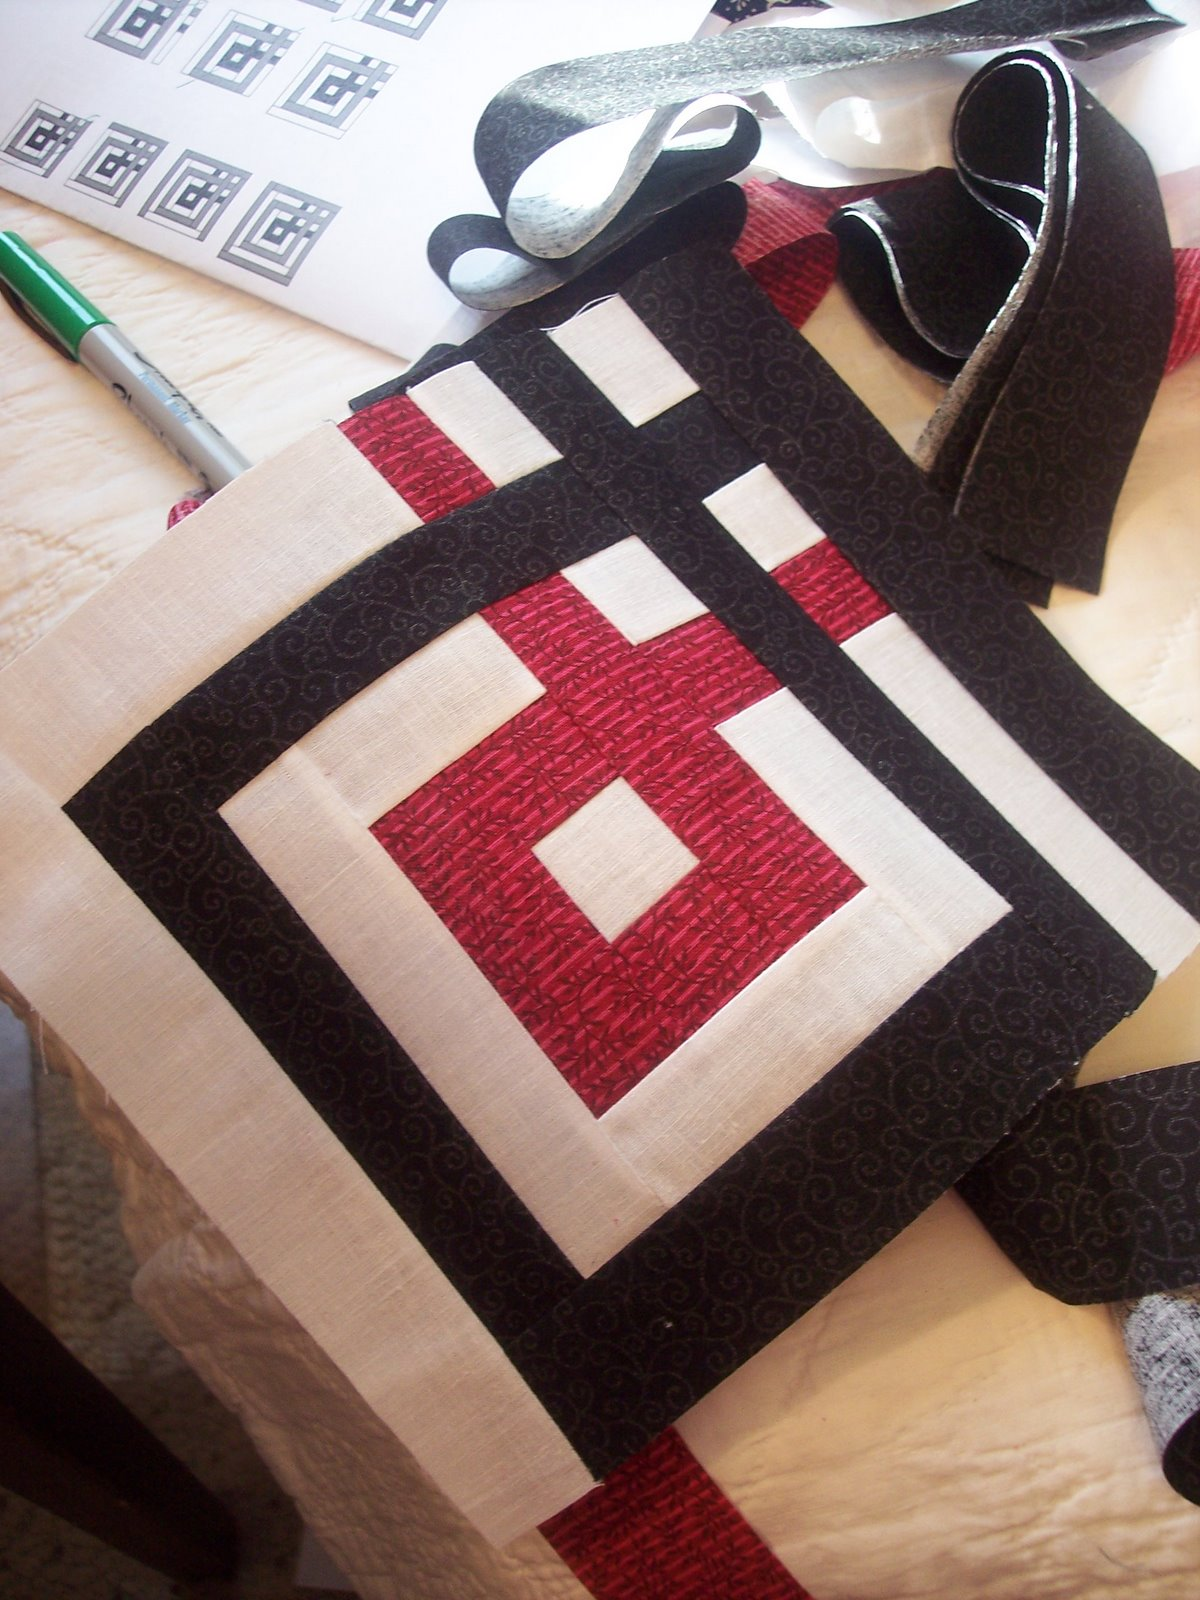 black white and red fabric made into a quilt block